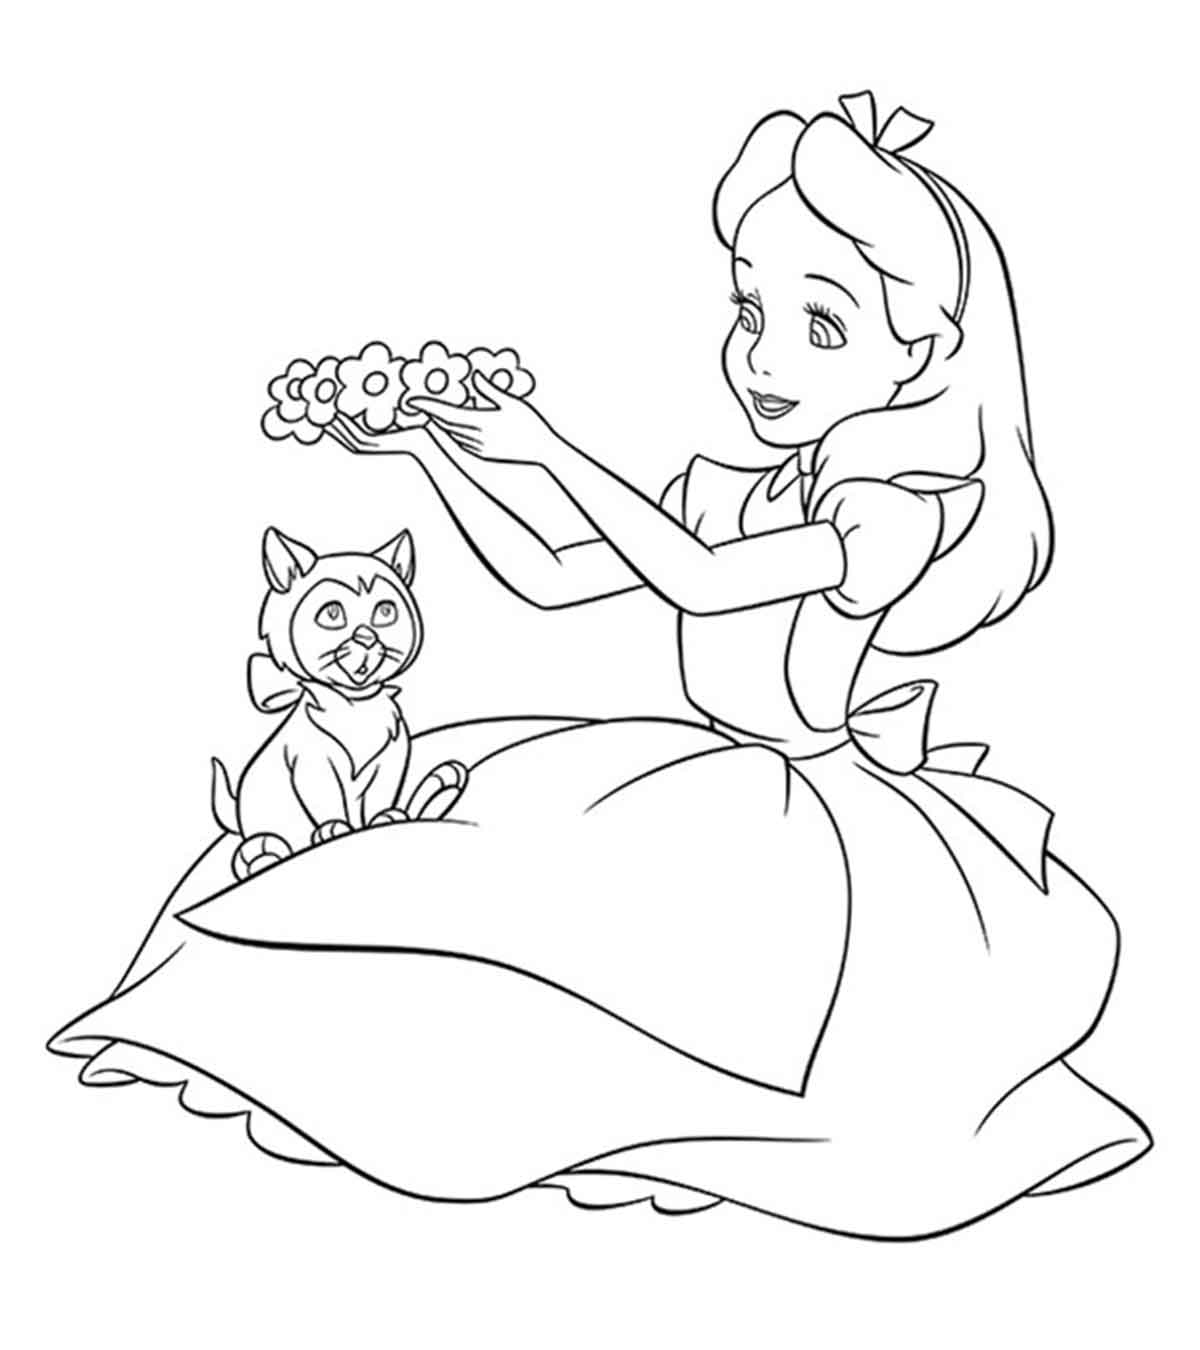 free coloring pages of disney characters cute coloring pages best coloring pages for kids of characters coloring free disney pages